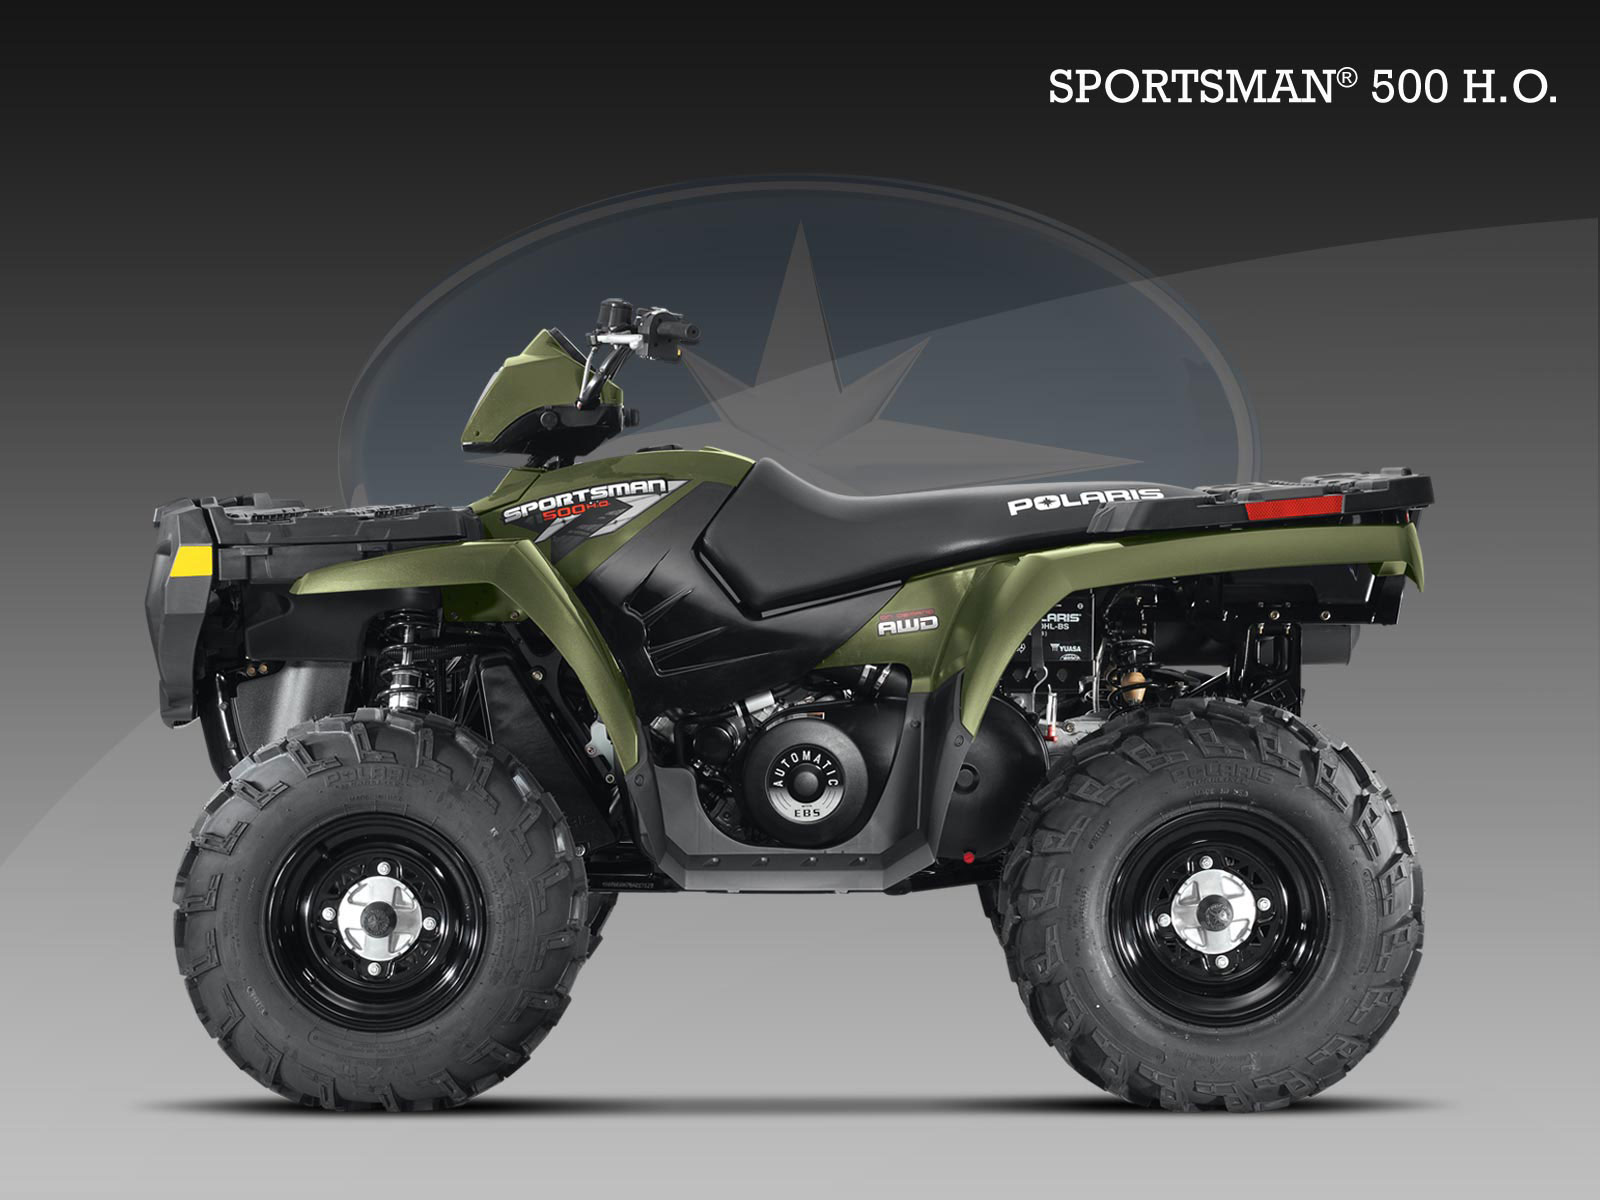 polaris sportsman 500 h o specs 2009 2010 autoevolution. Black Bedroom Furniture Sets. Home Design Ideas